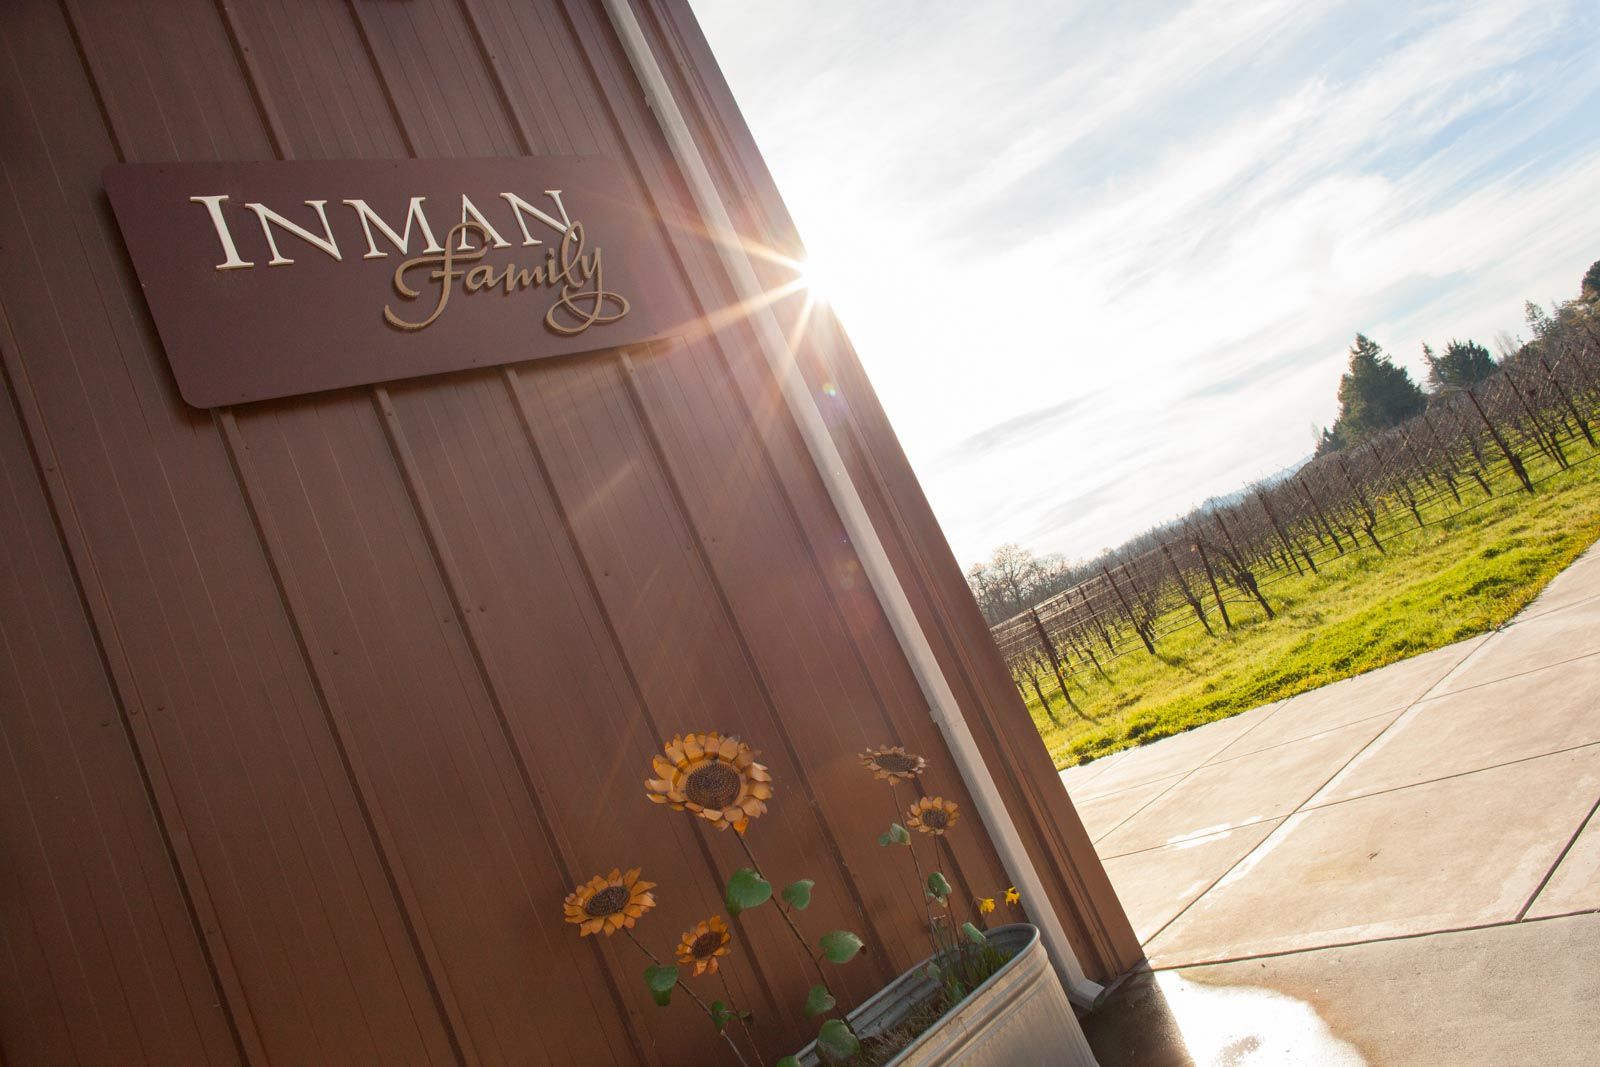 The entrance to Inman Family Wines. ©Kevin Day/Opening a Bottle